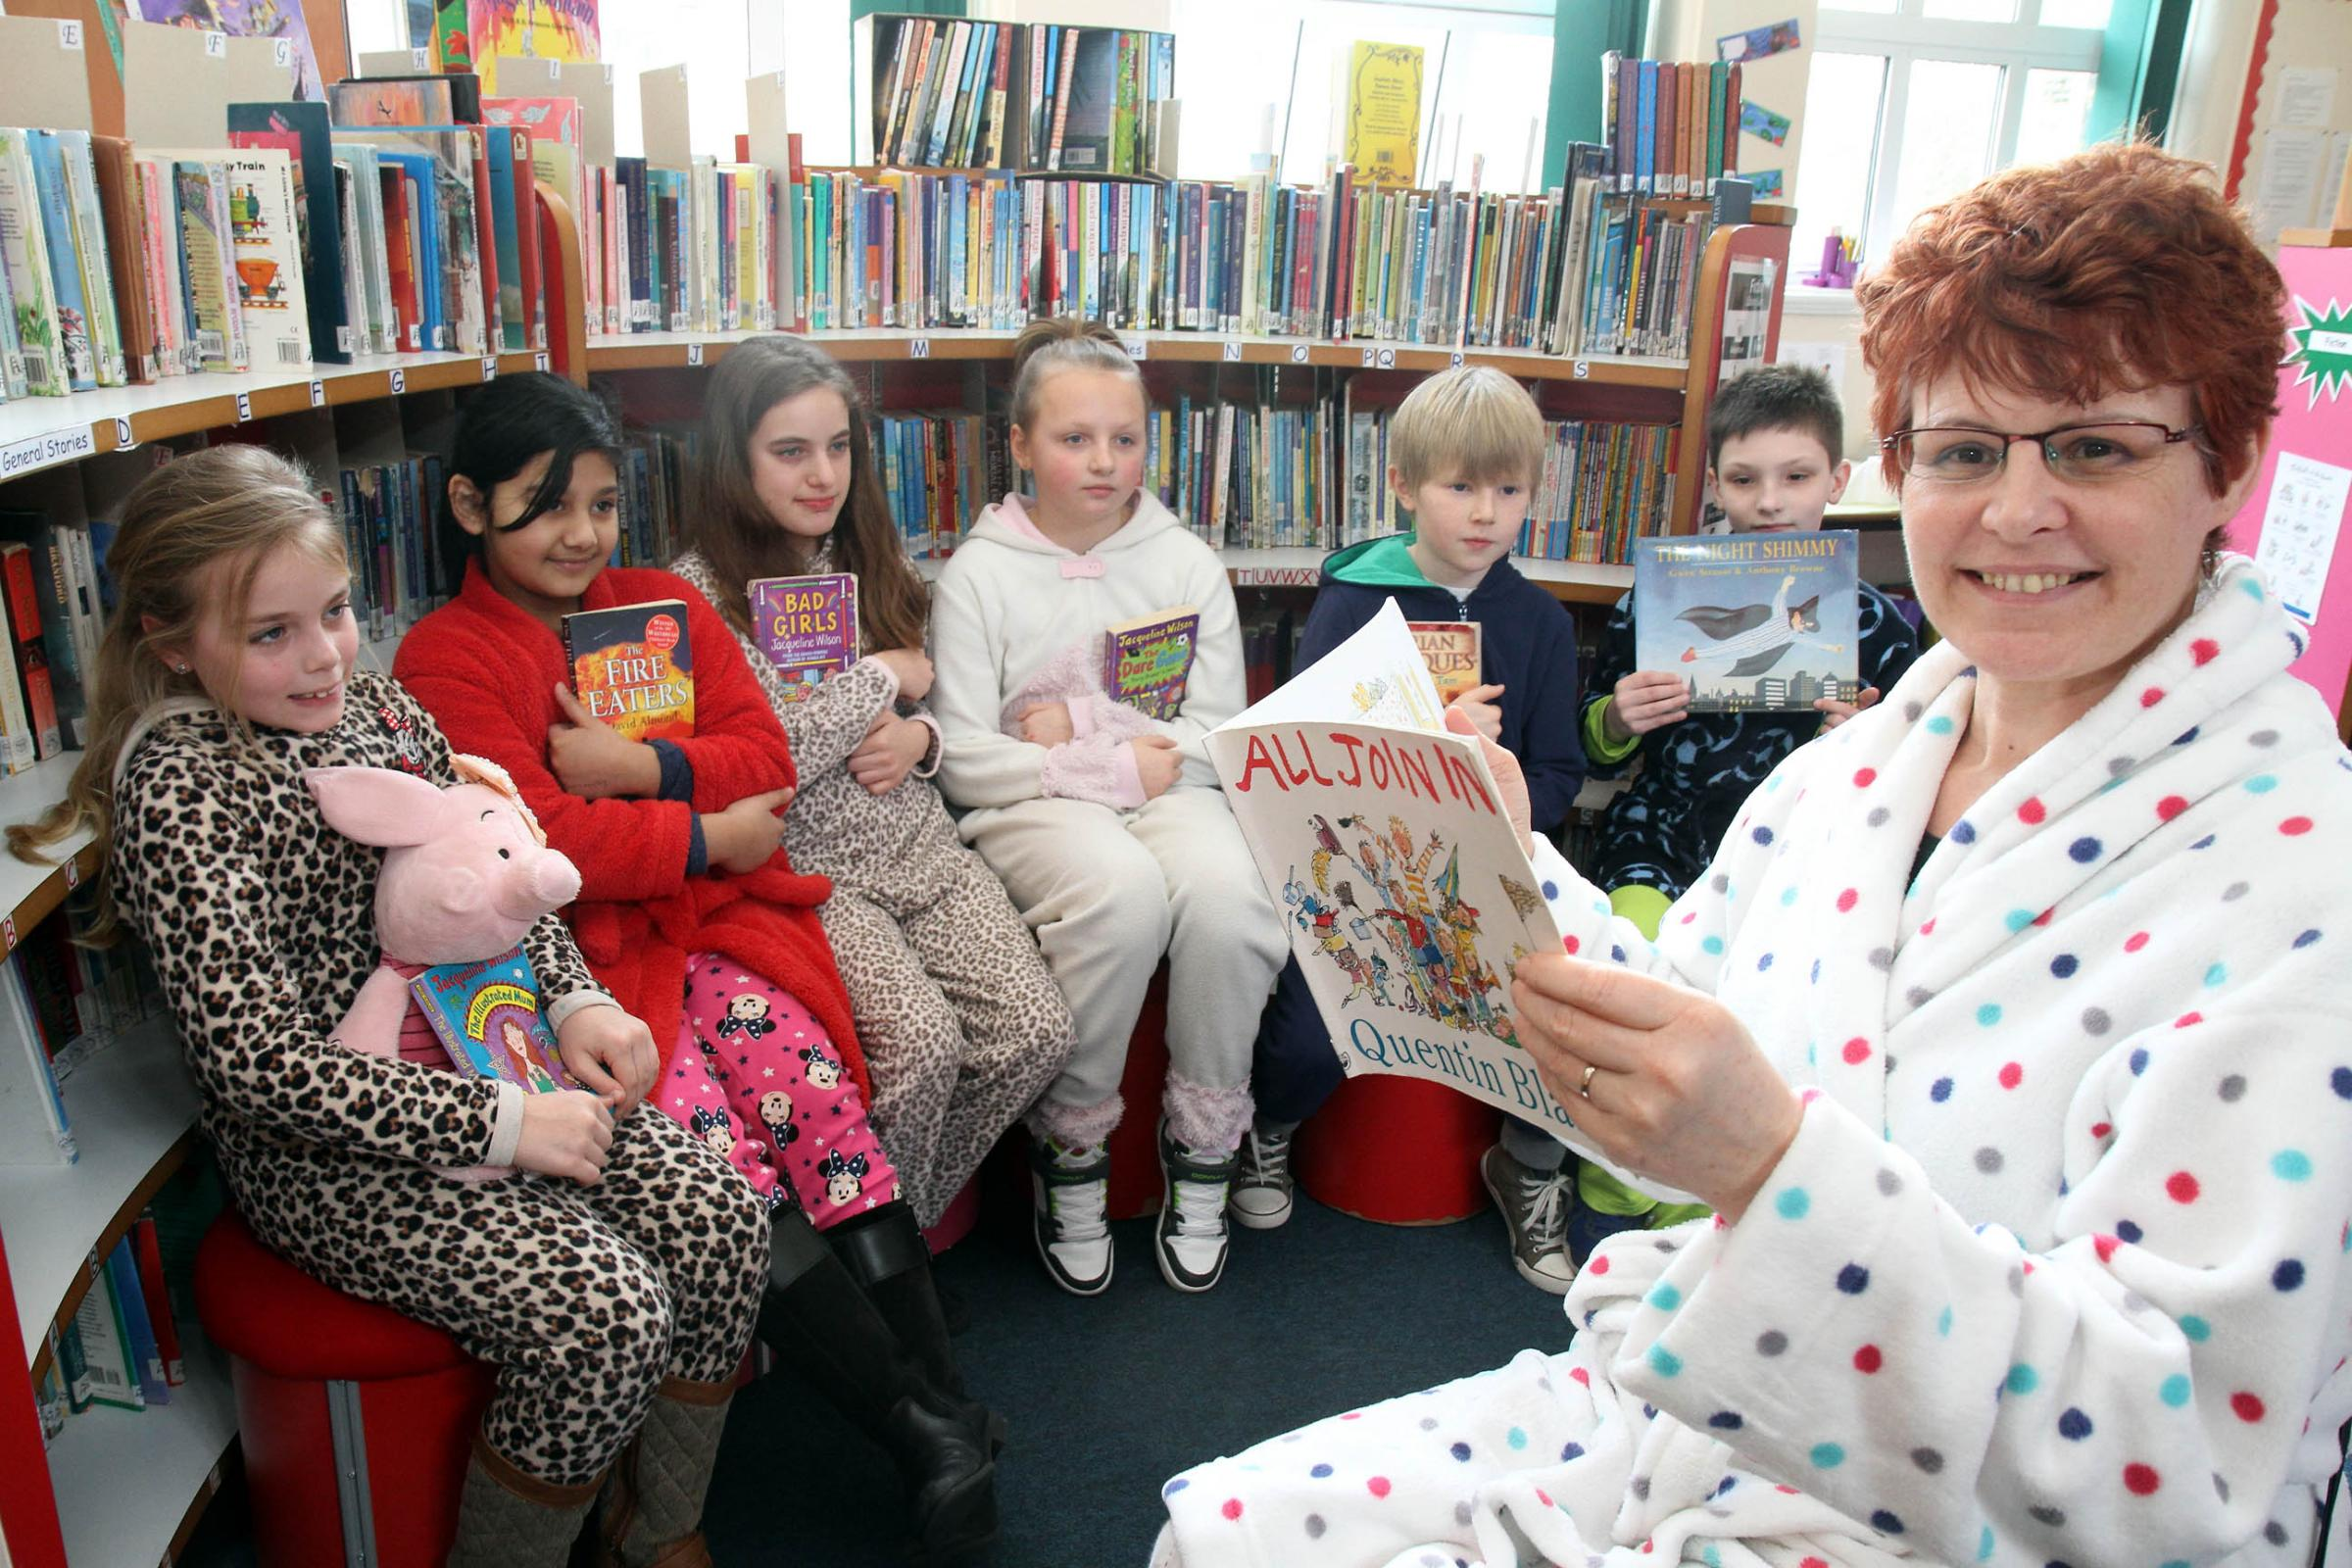 Hothfield Junior School support assistant, Jane Spencer, joins pyjama-clad pupils for a book-reading session as part of efforts to raise vital funds for the Bradford Hospitals Children's Charity